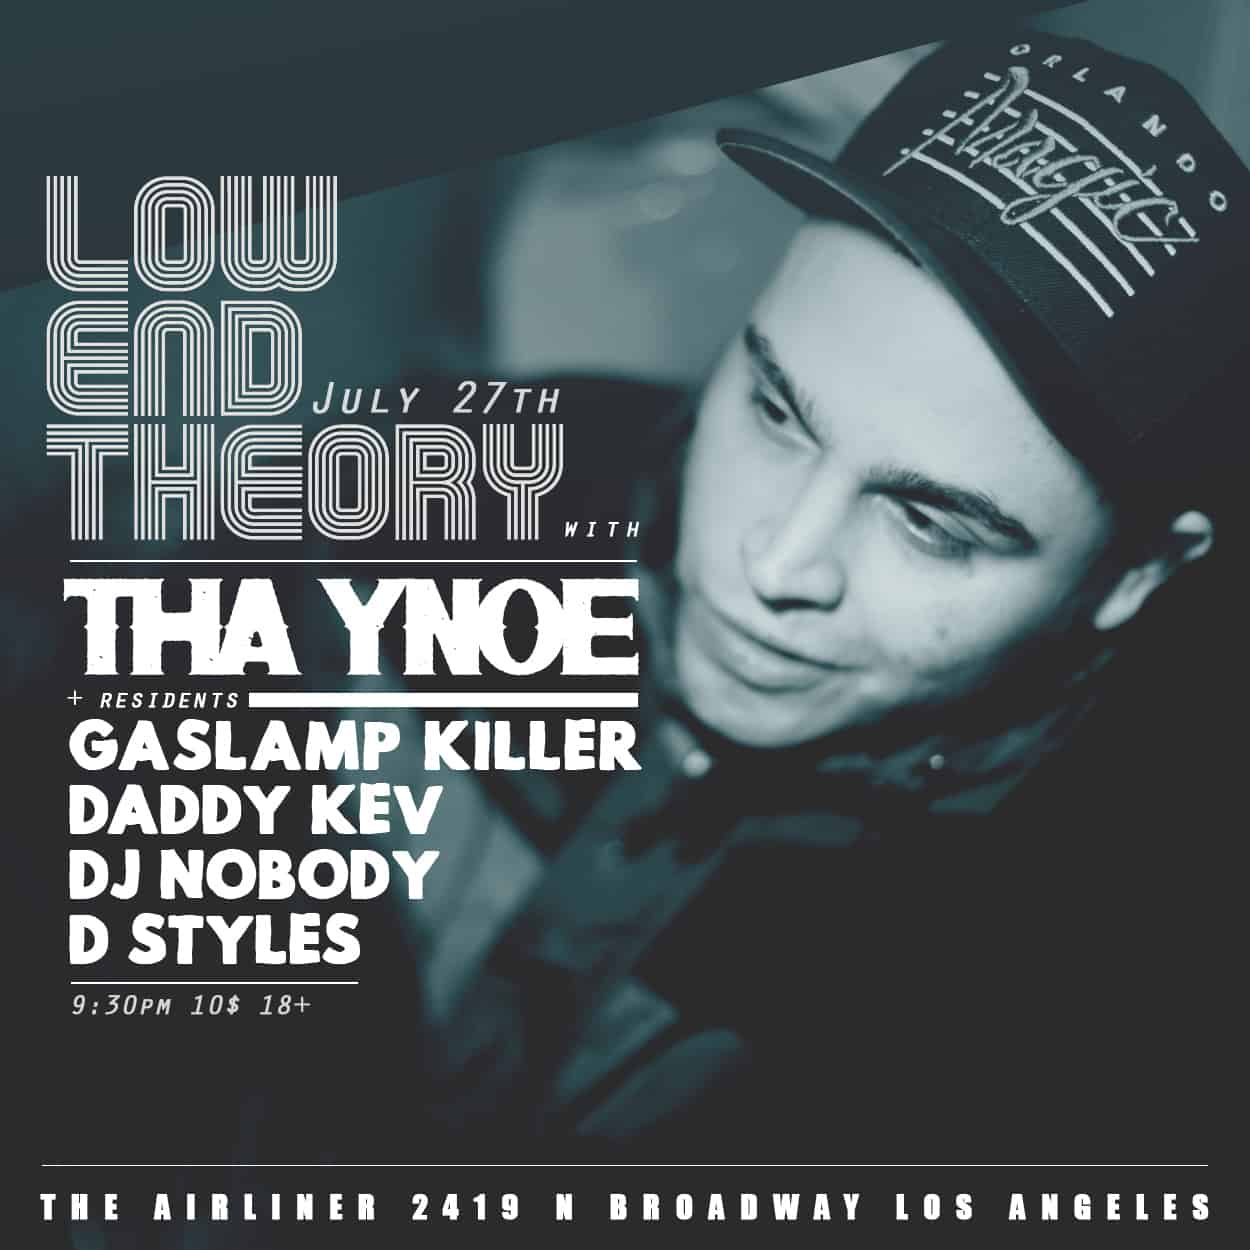 ynoe - low end theory - flyer design